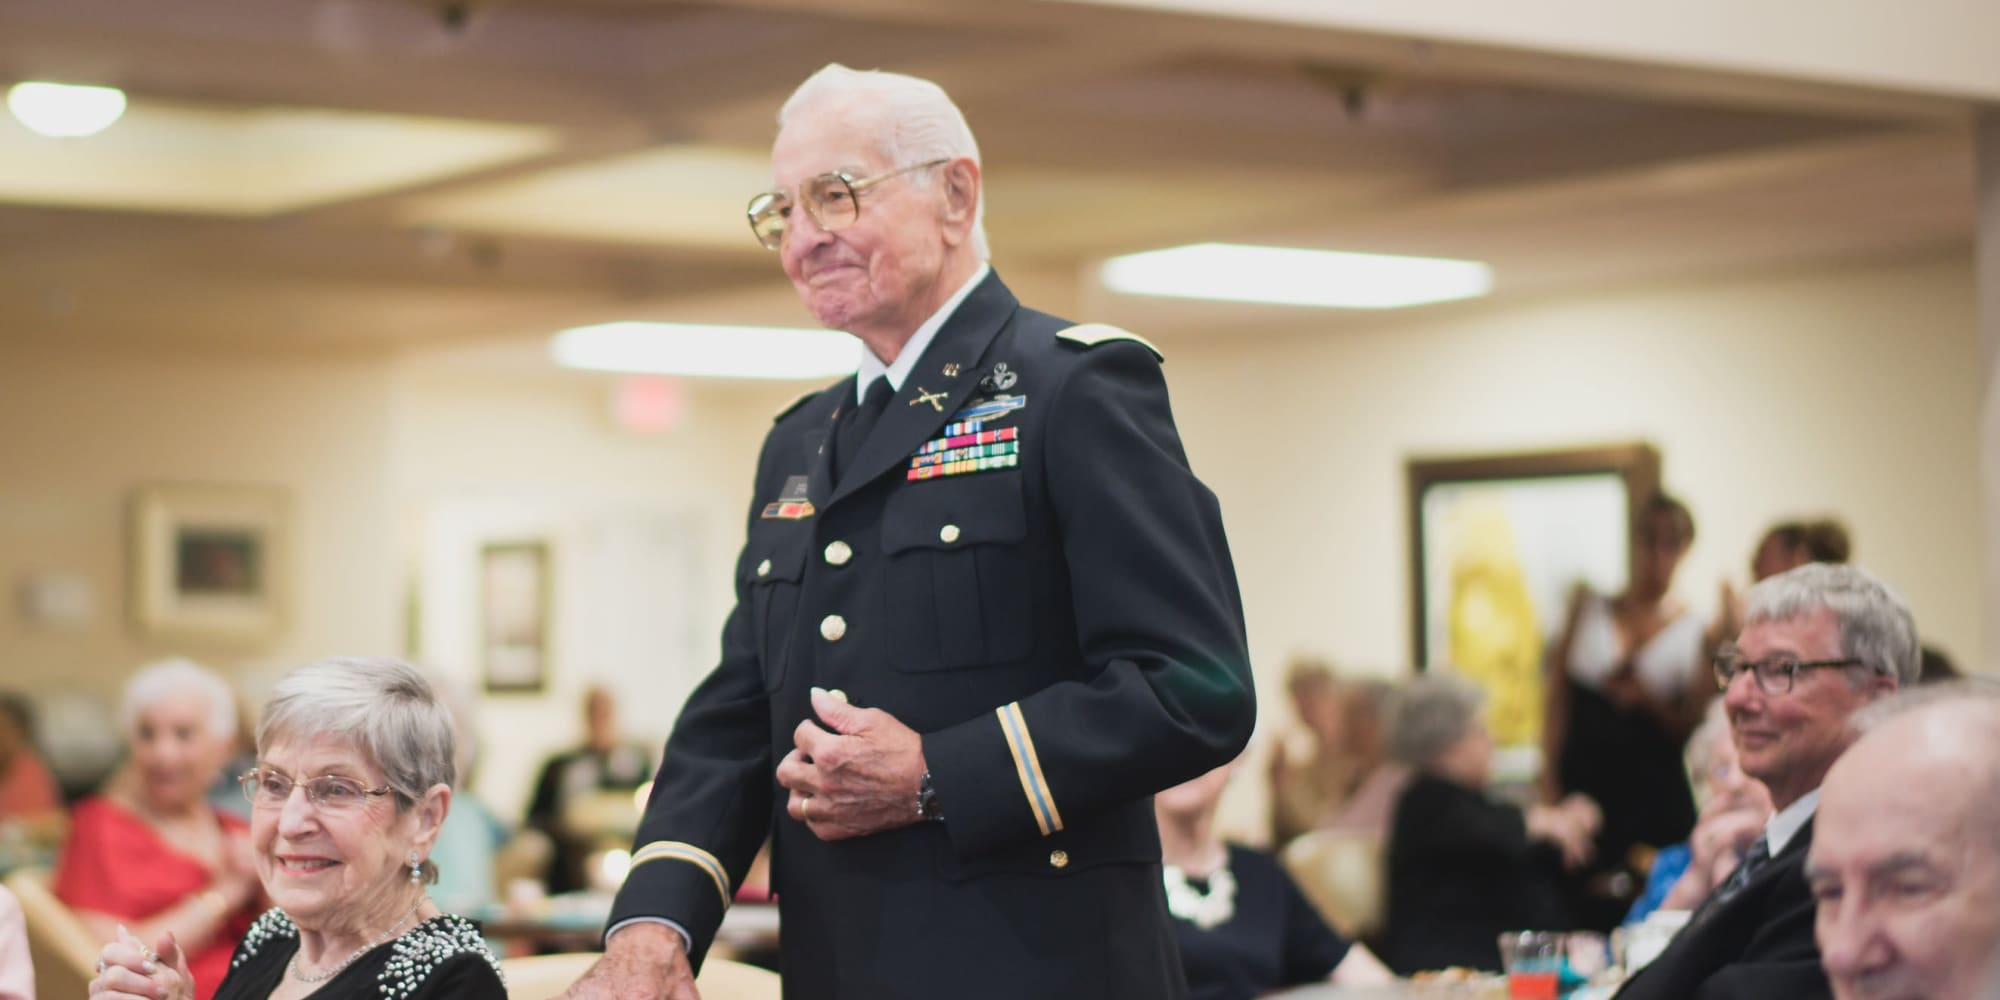 A veteran being recognized at Chesterfield Heights in Midlothian, Virginia